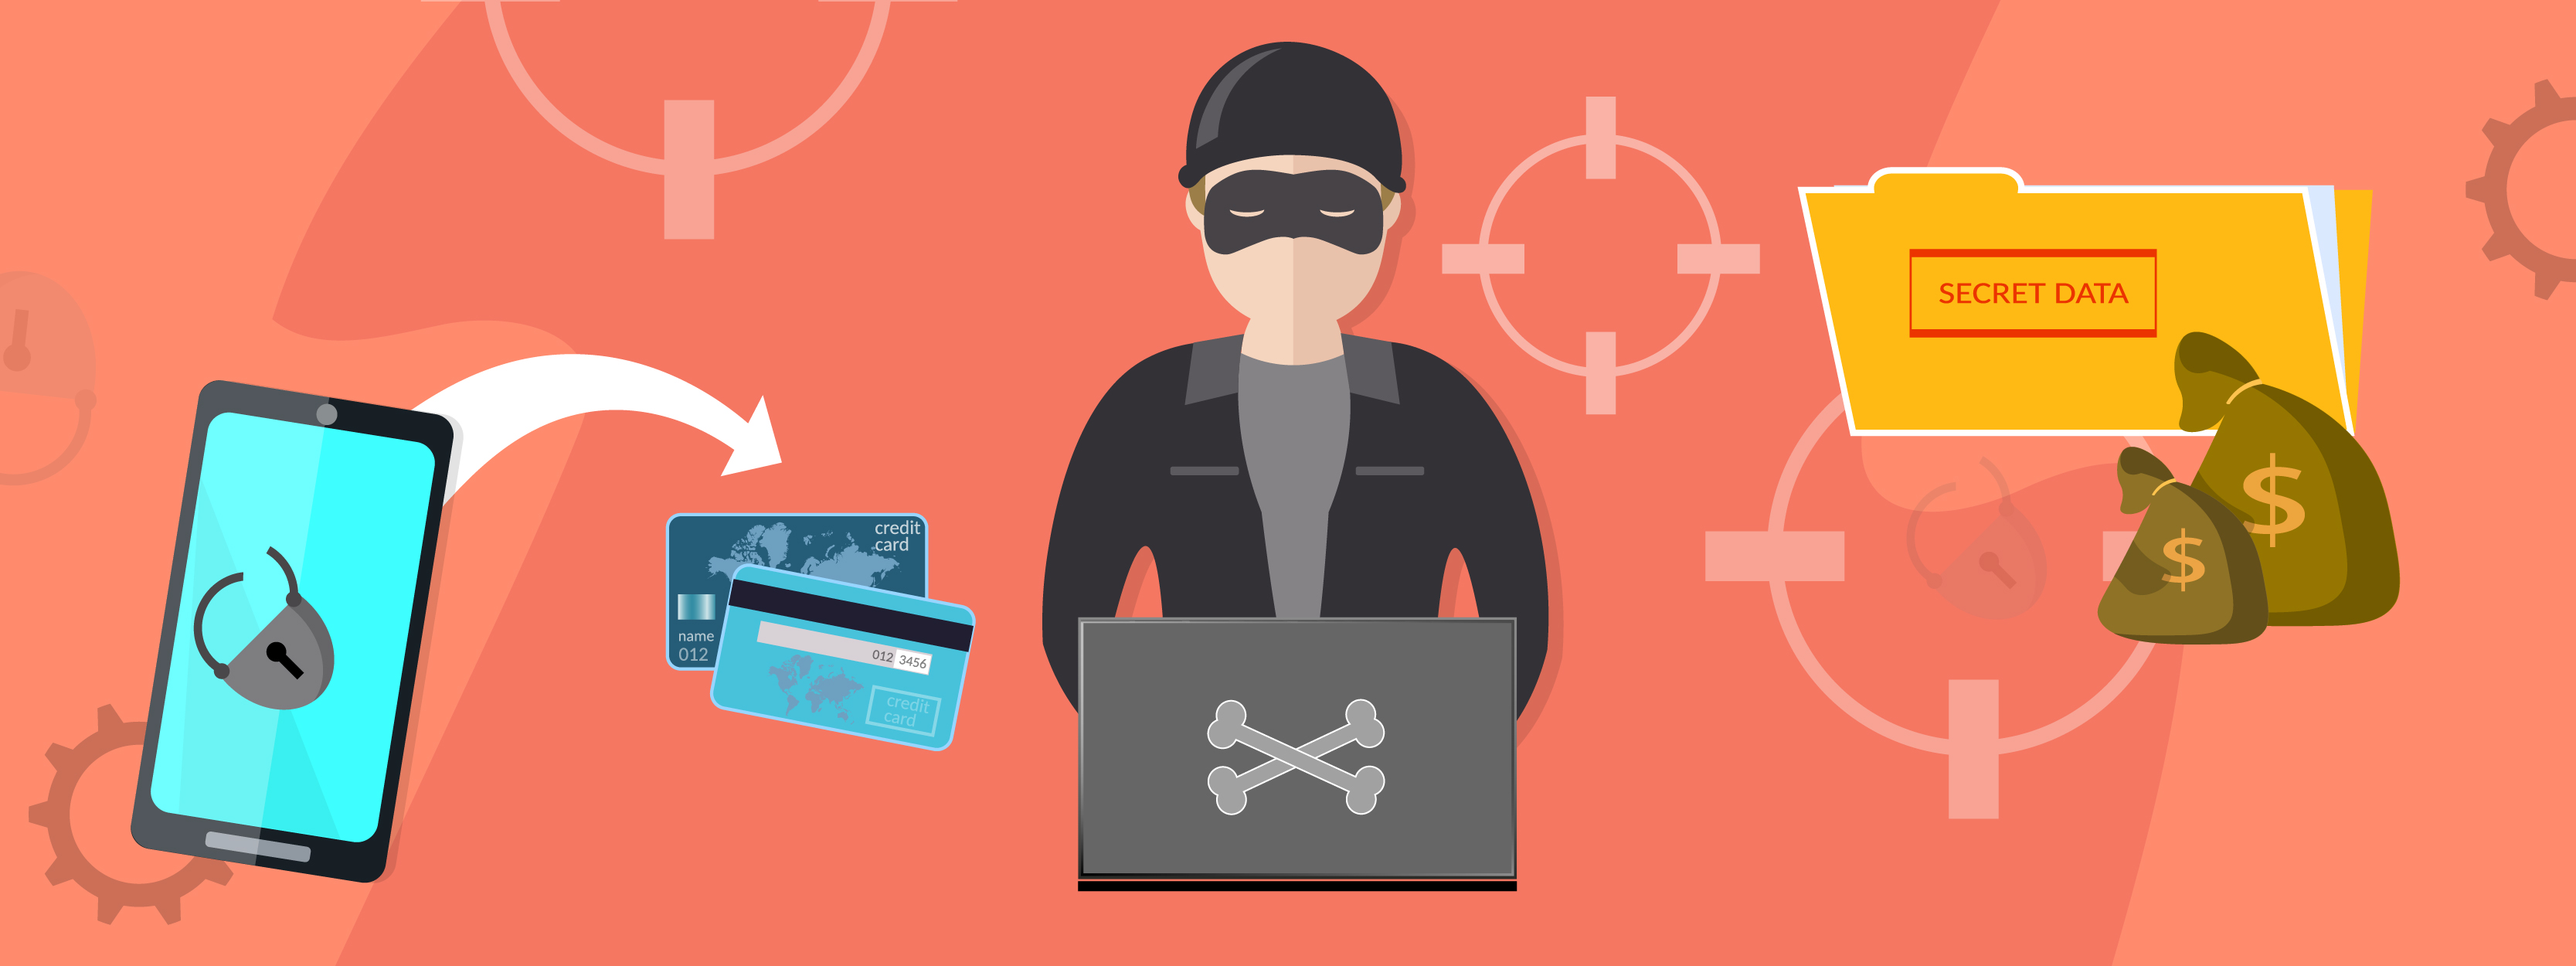 Medical Identity Theft - A Growing Risk for Consumers